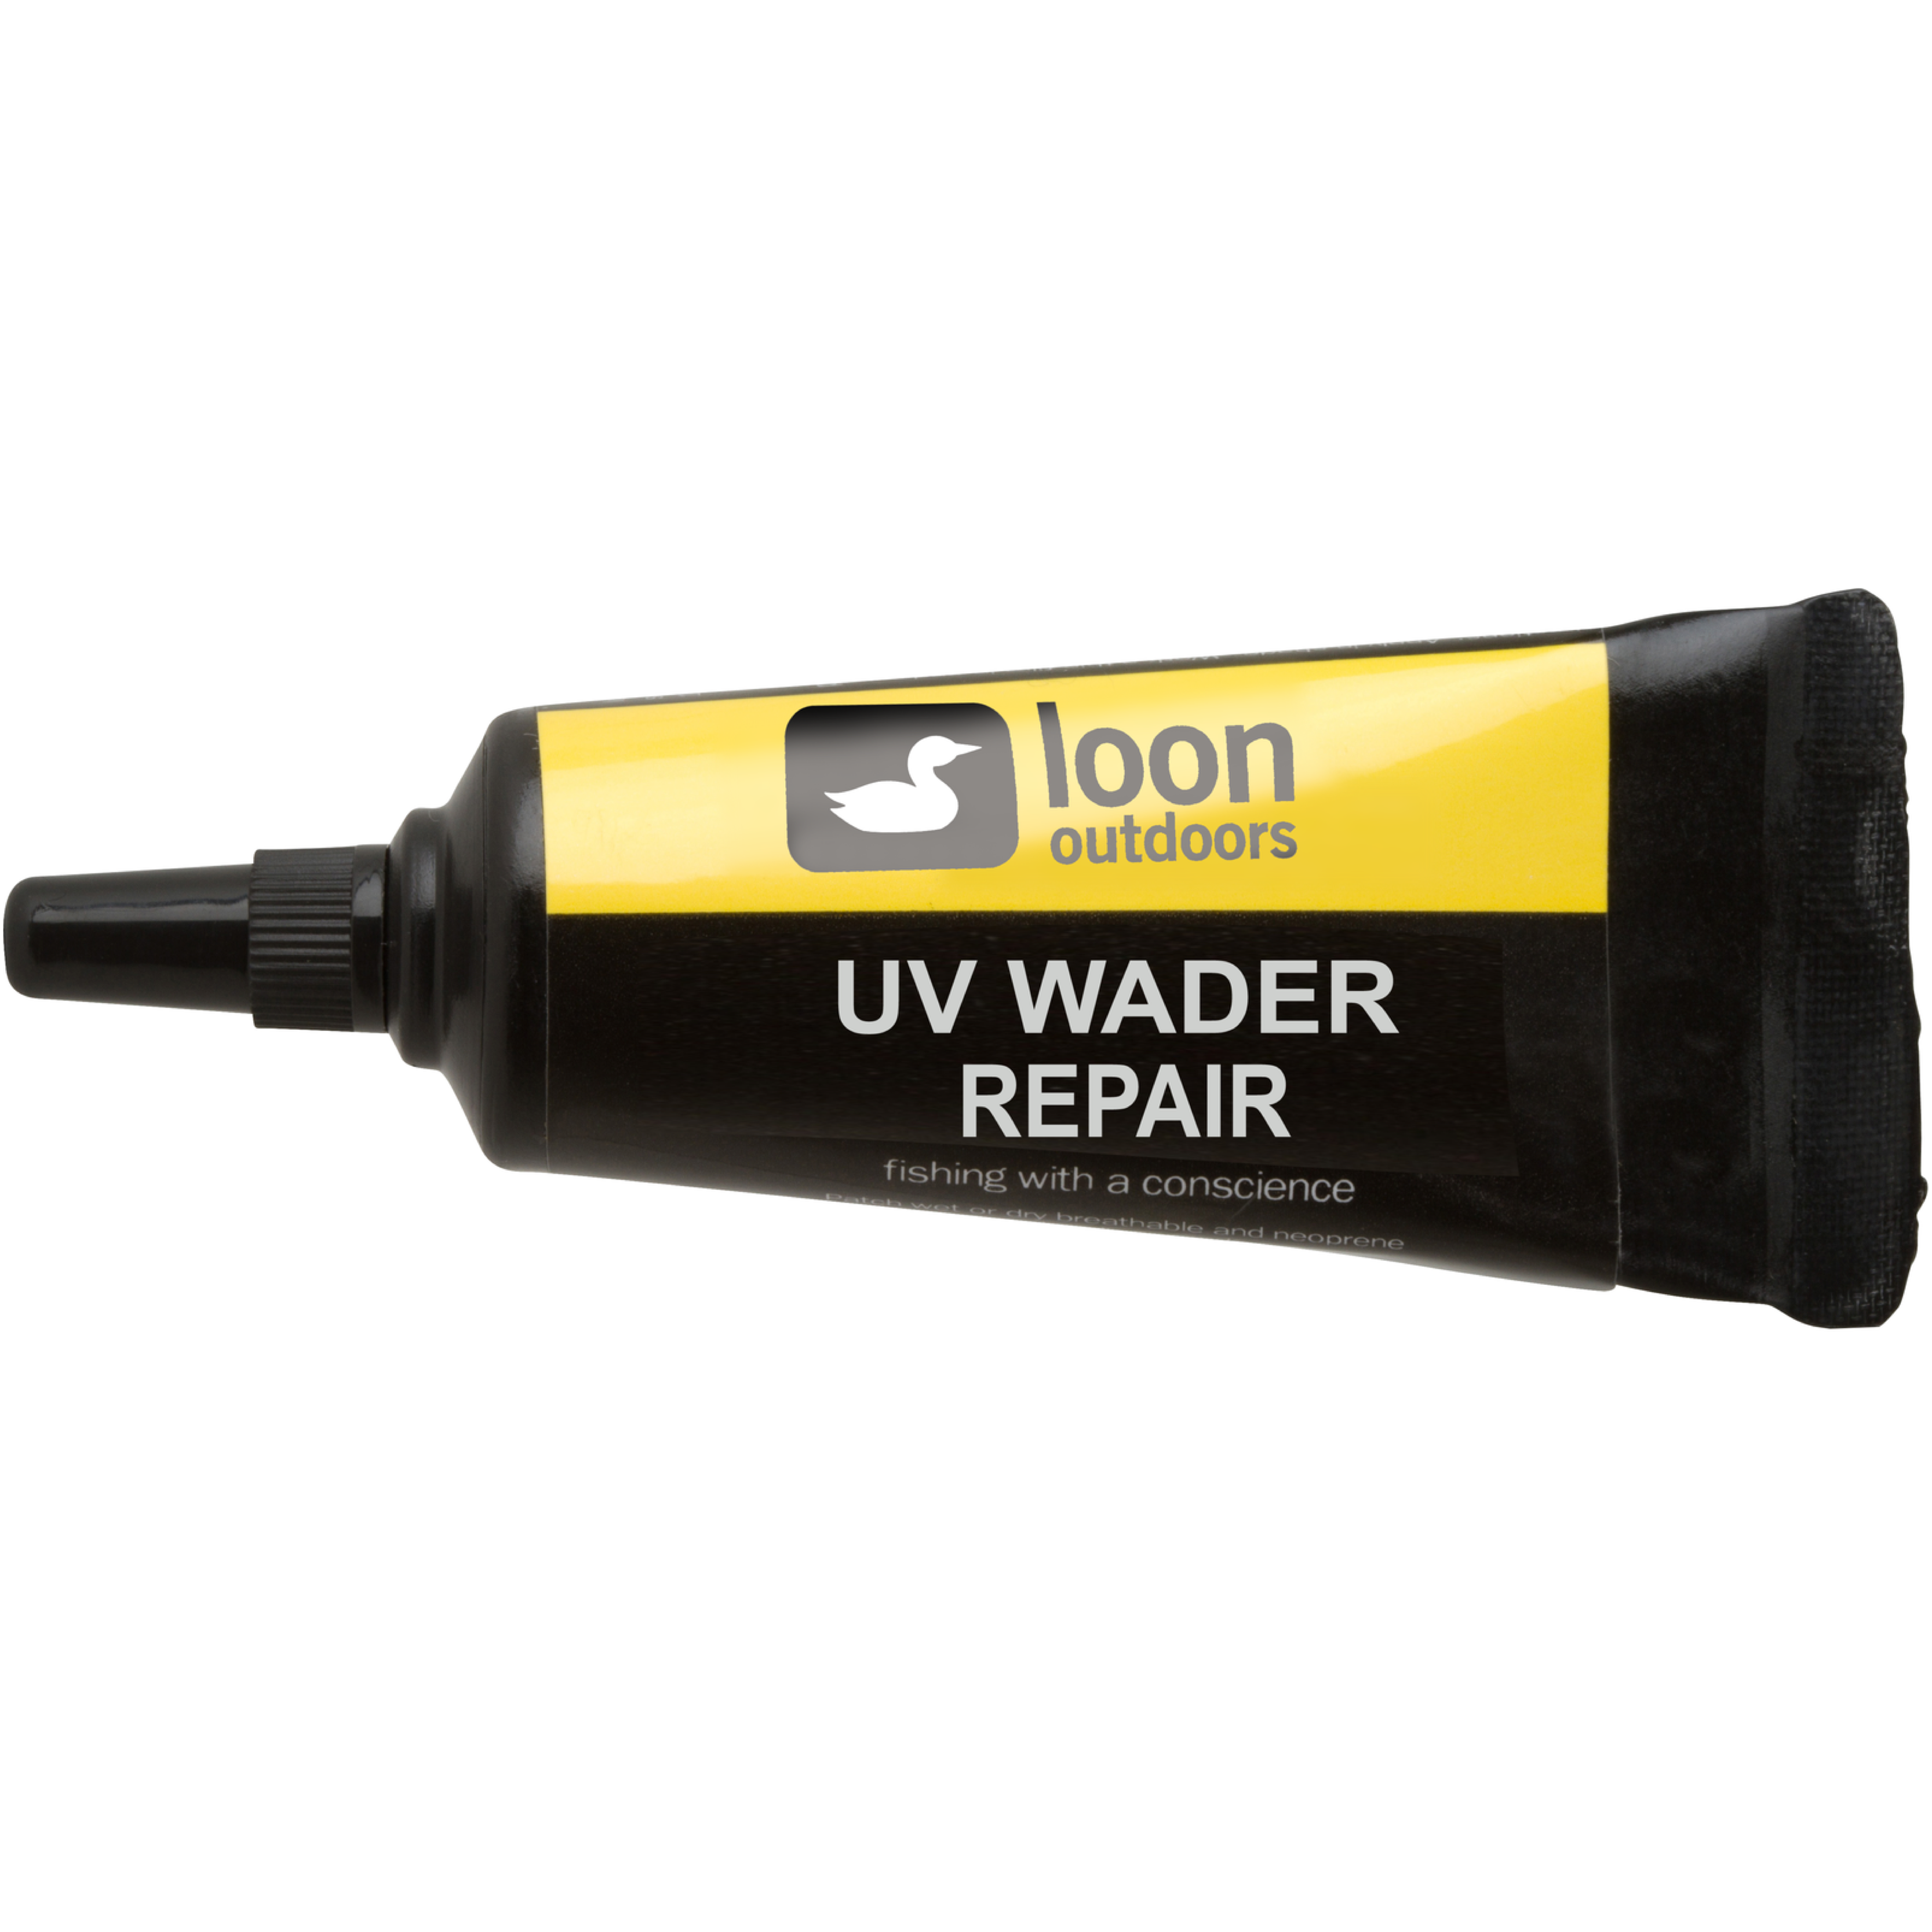 Клей Loon UV Wader Repair (1/2 oz (14 гр.))